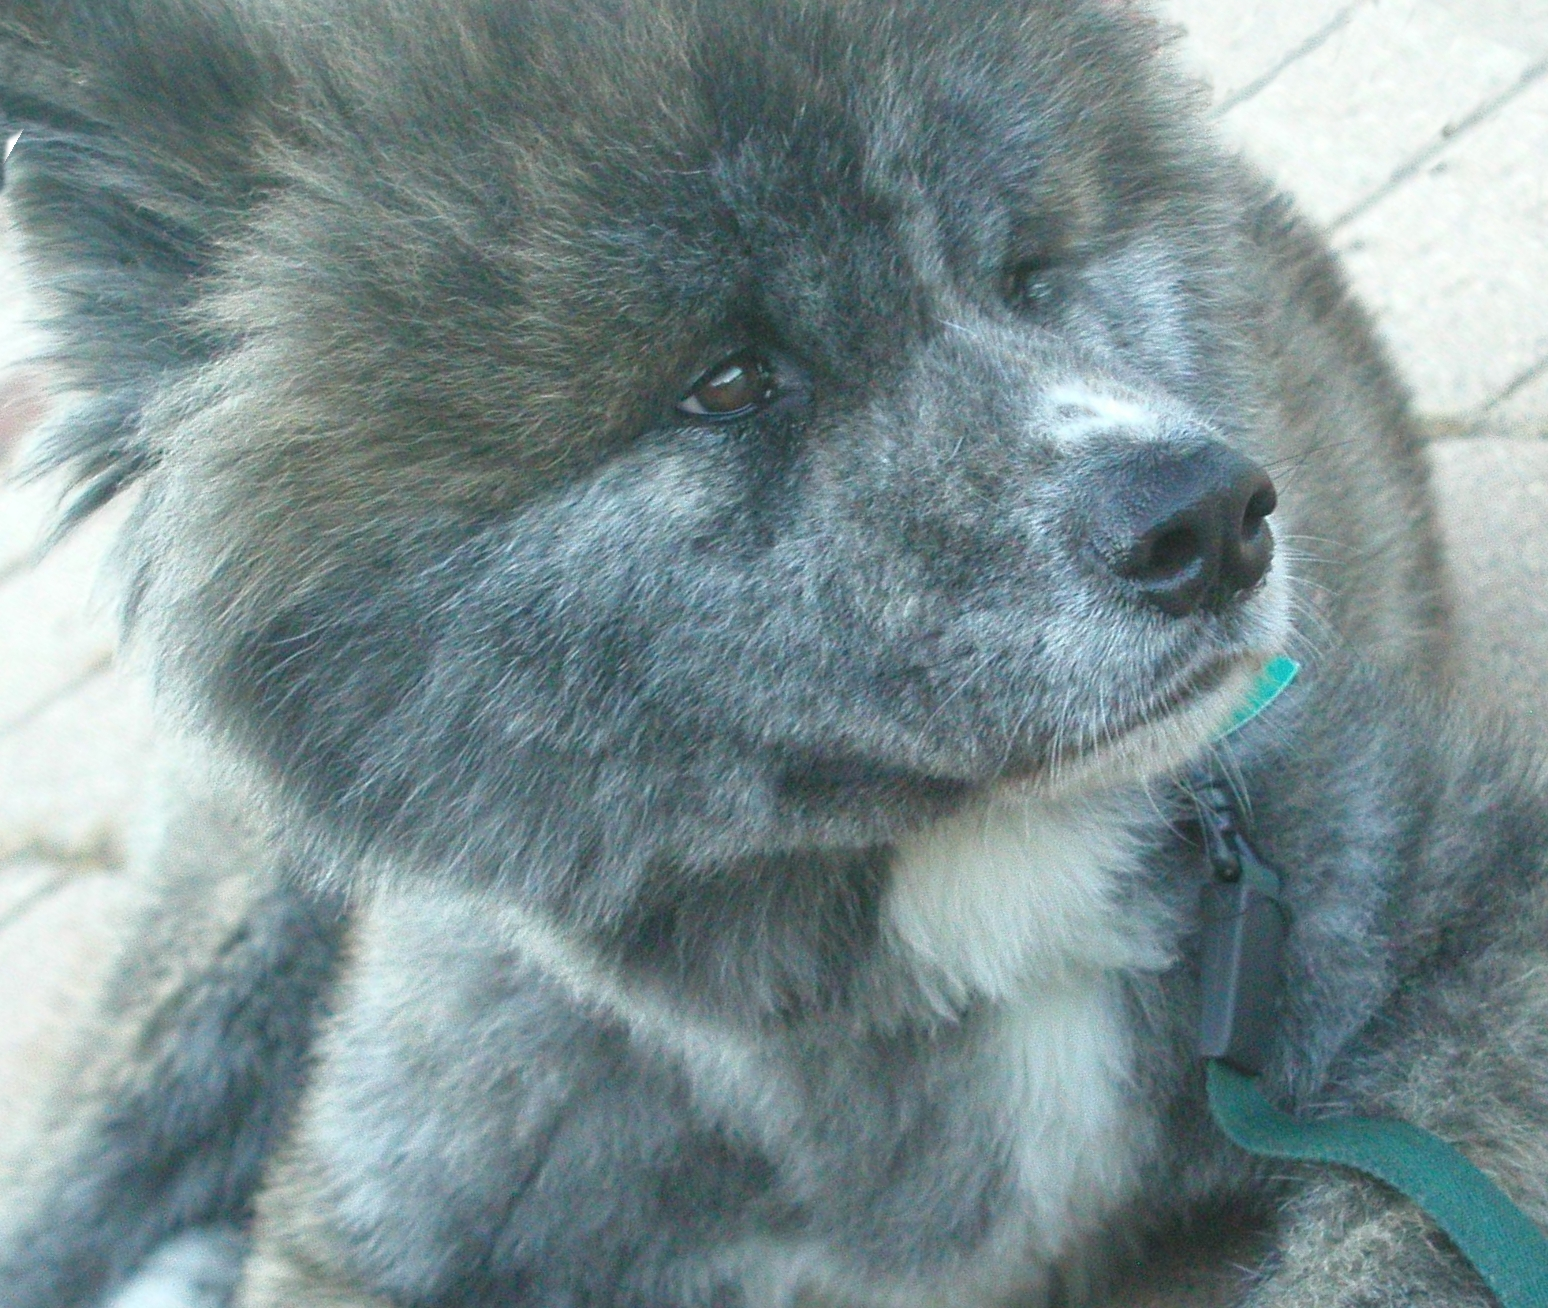 File:Brindle Moku Akita Inu - Medium Length Clipped Fur - Face Shot ...